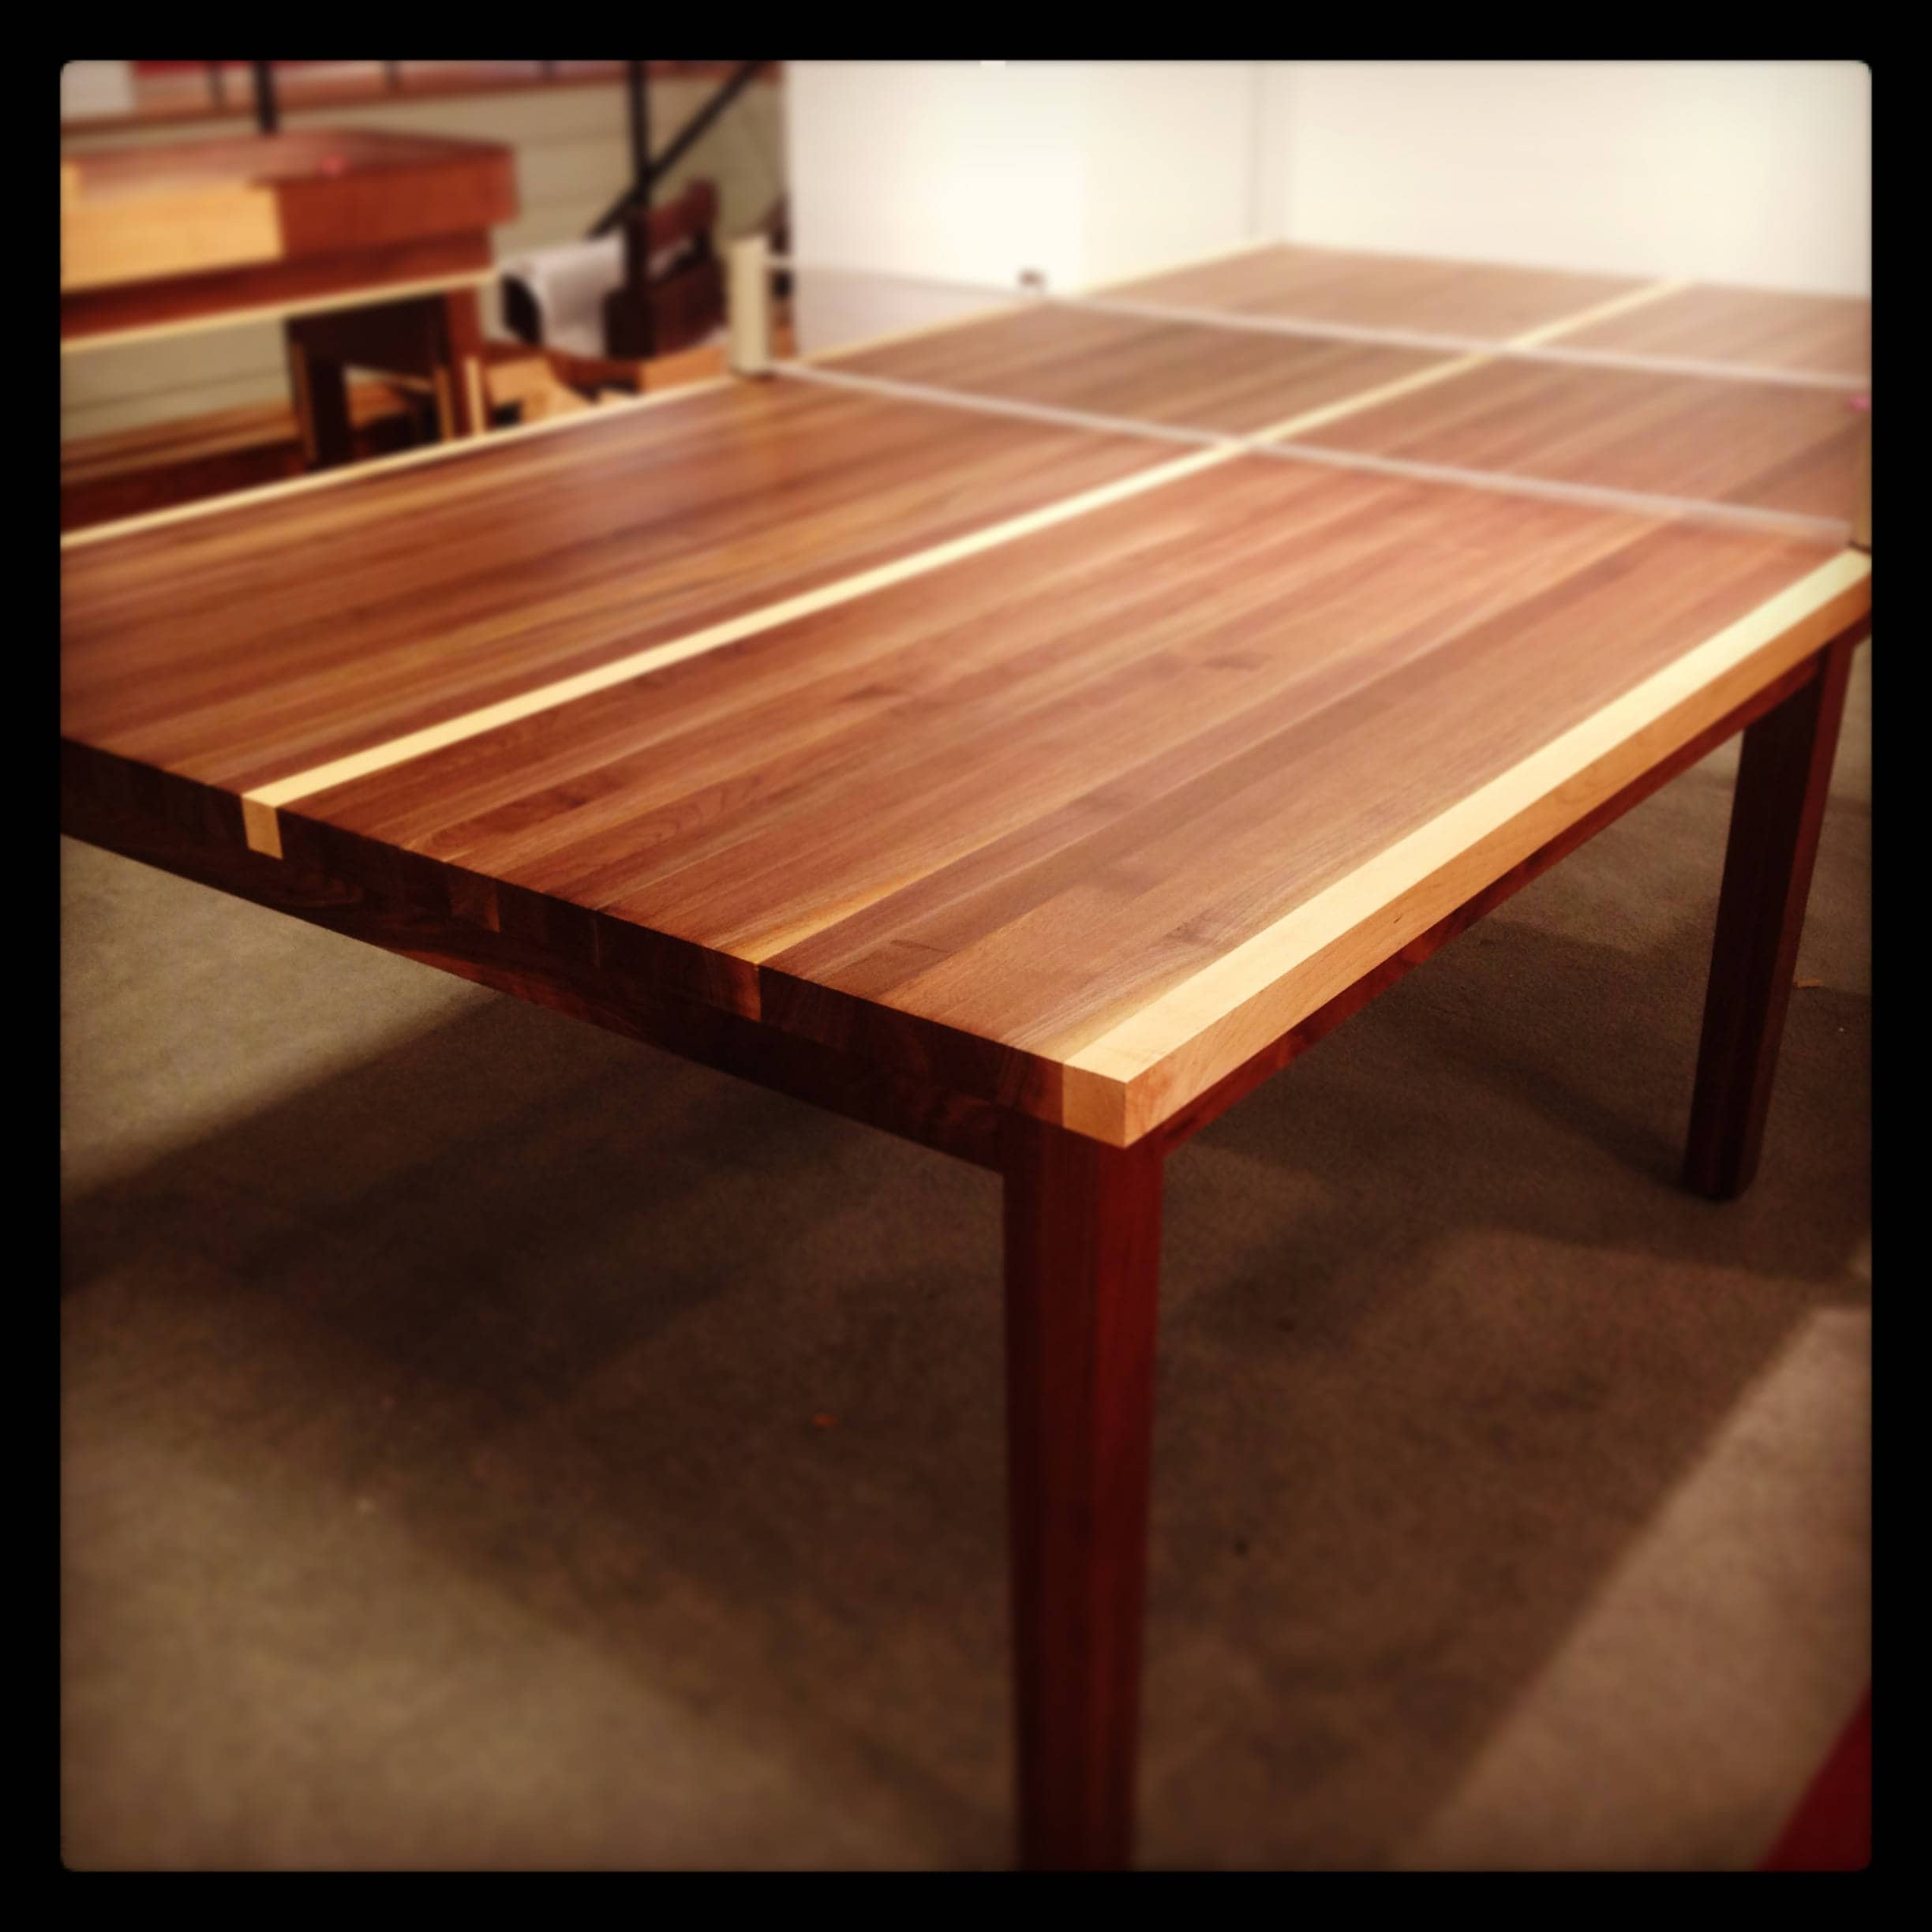 Custom Wood Ping Pong TableTable Tennis TableConference Tablein - Table tennis conference table